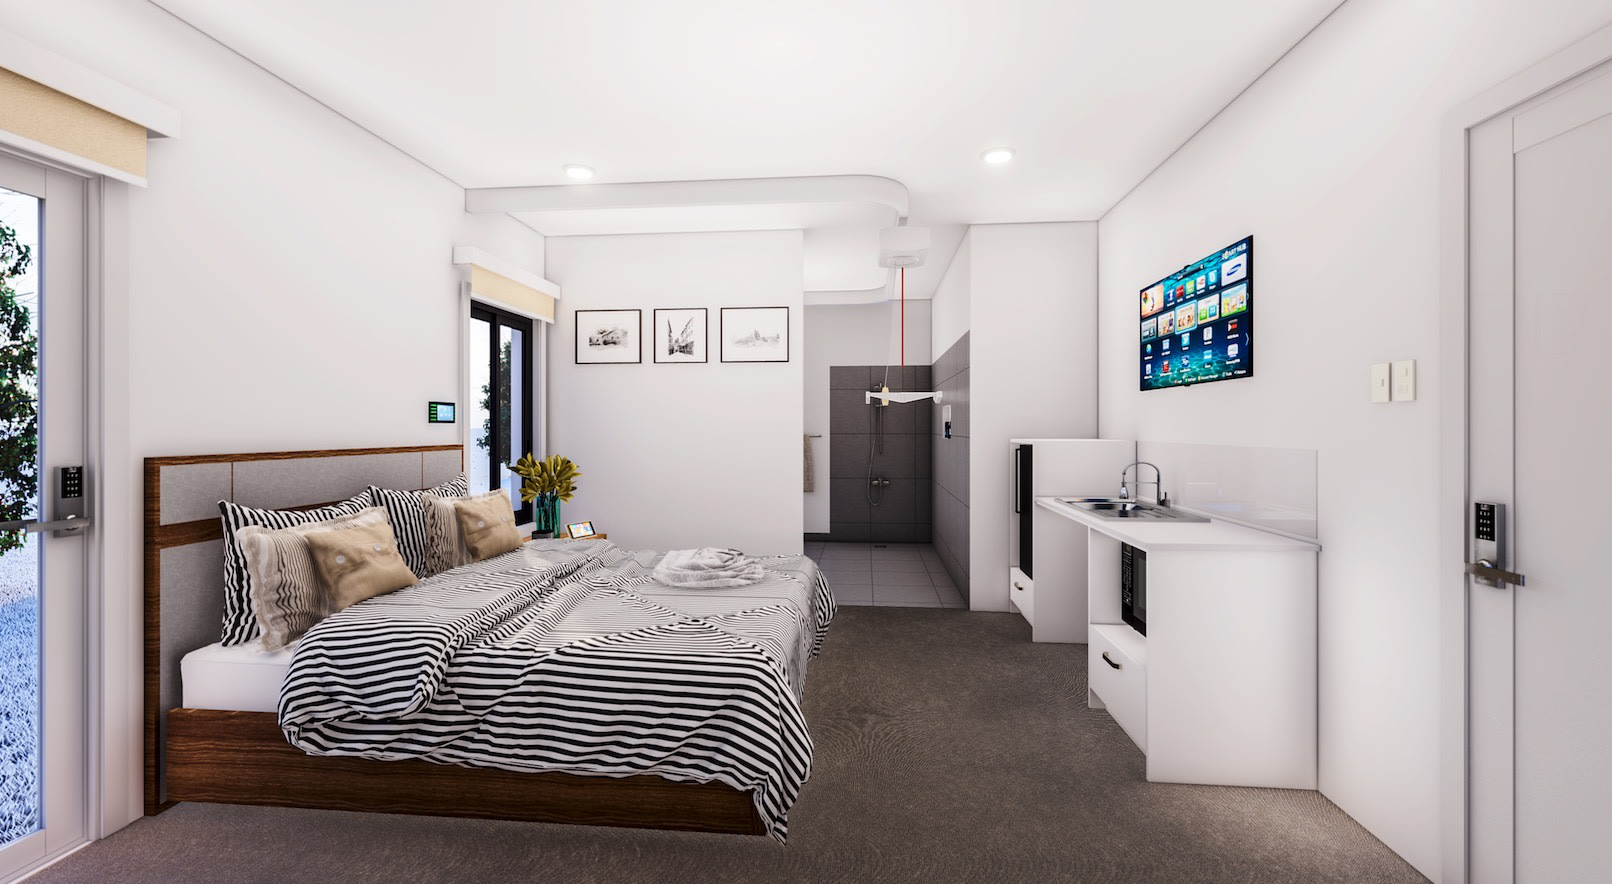 Bedroom in a Choice 3 H